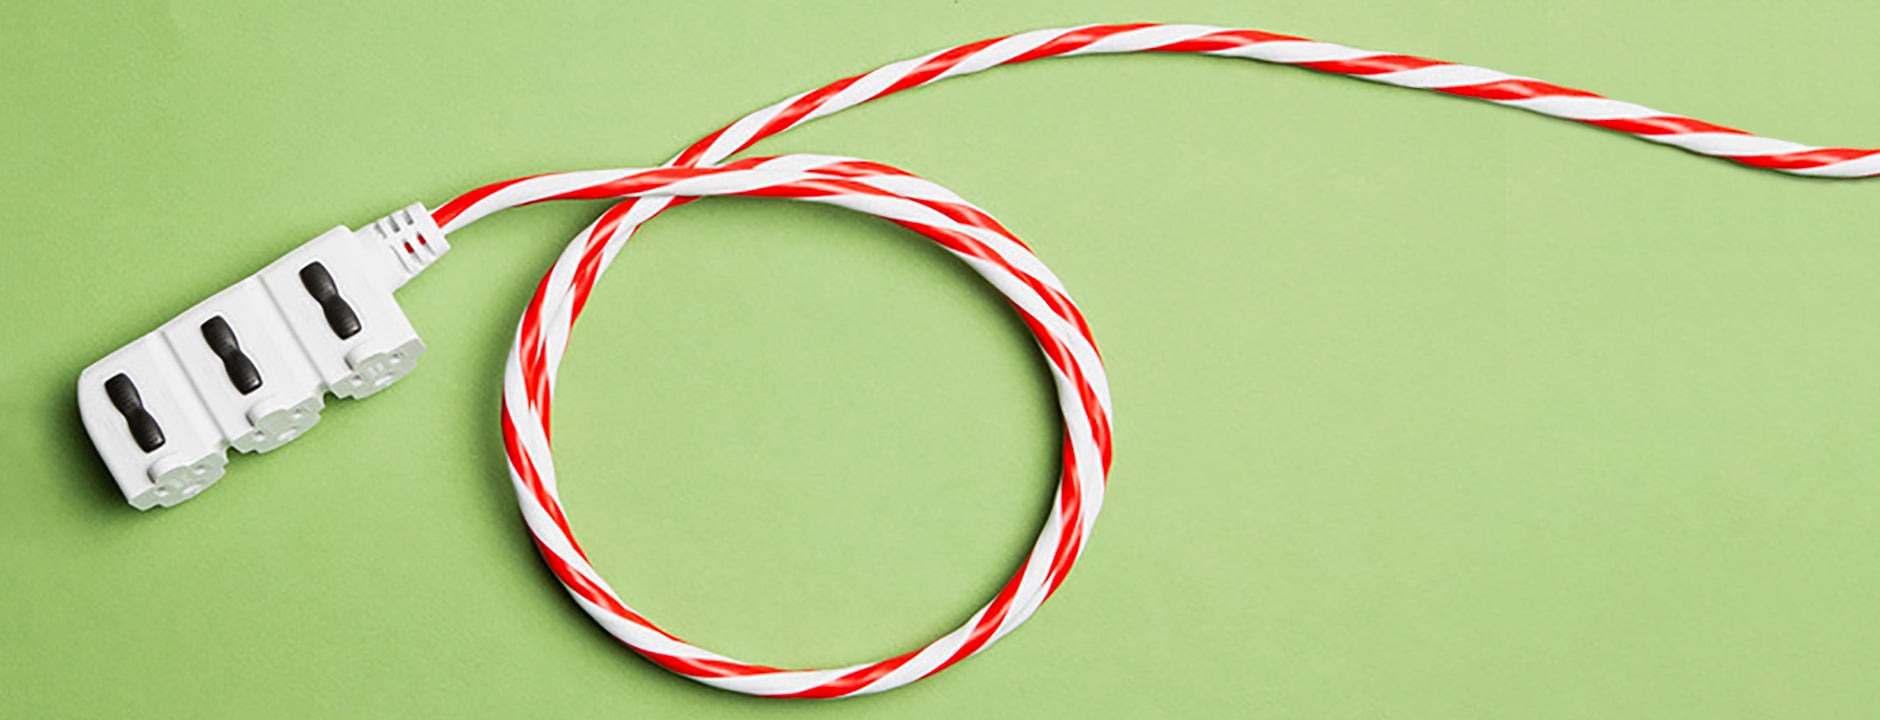 holiday extension cord